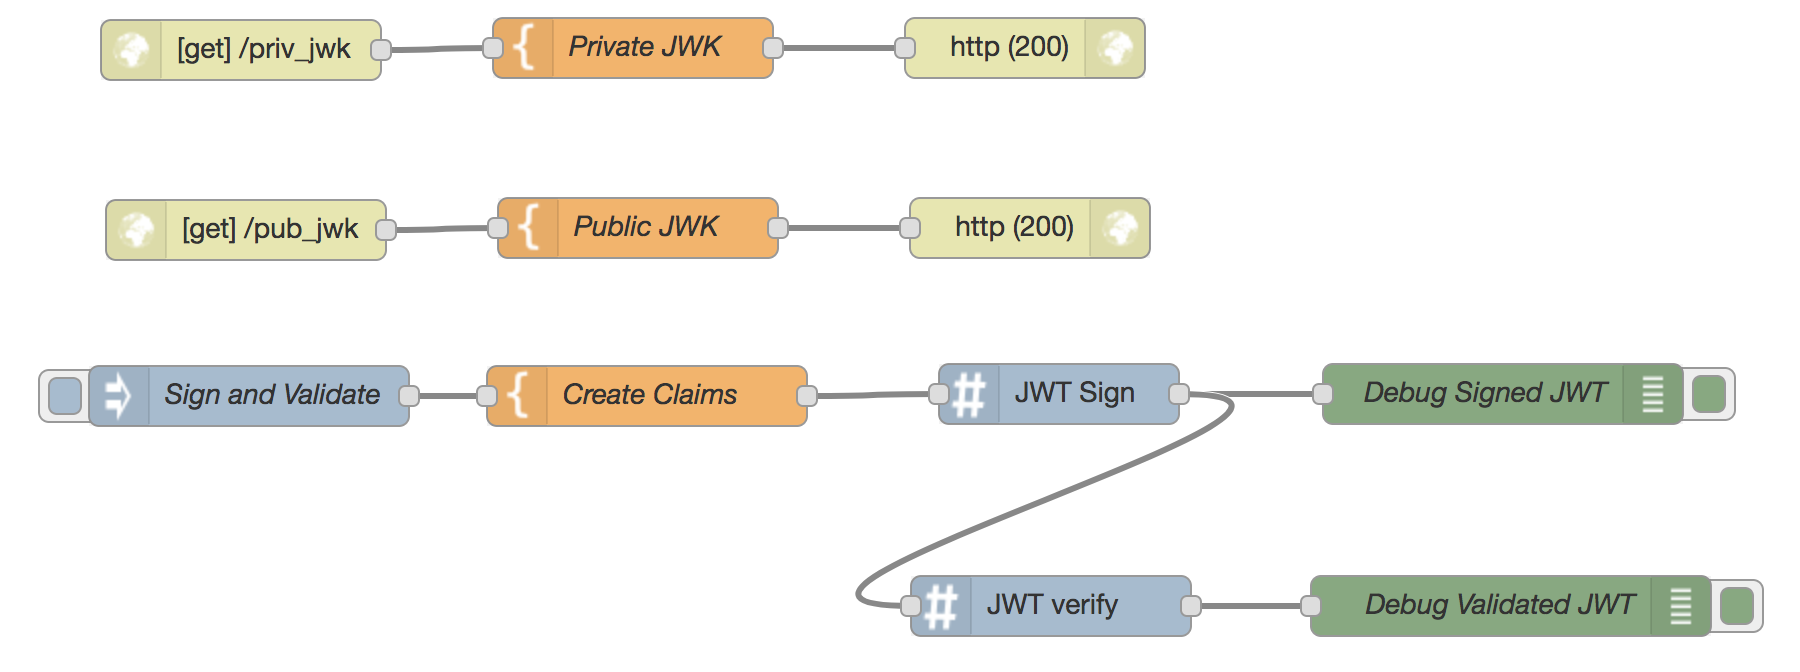 node-red-contrib-jwt - Node-RED